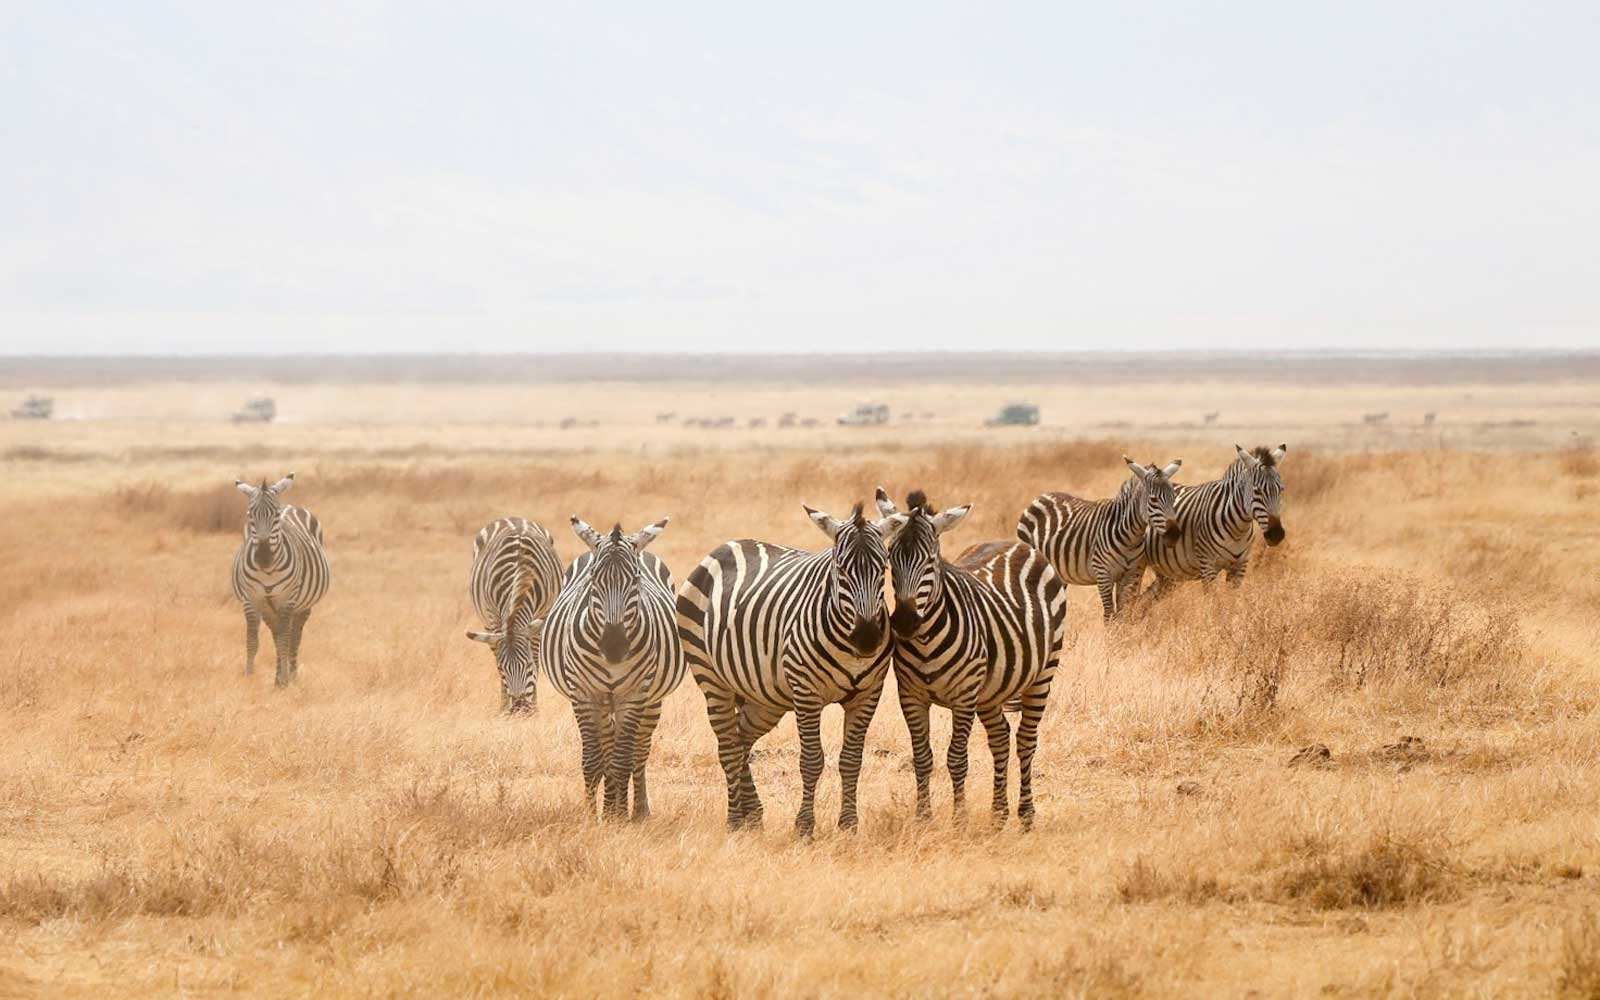 safari-zebra-herd-PHOTOCONEDPIC1017.jpg